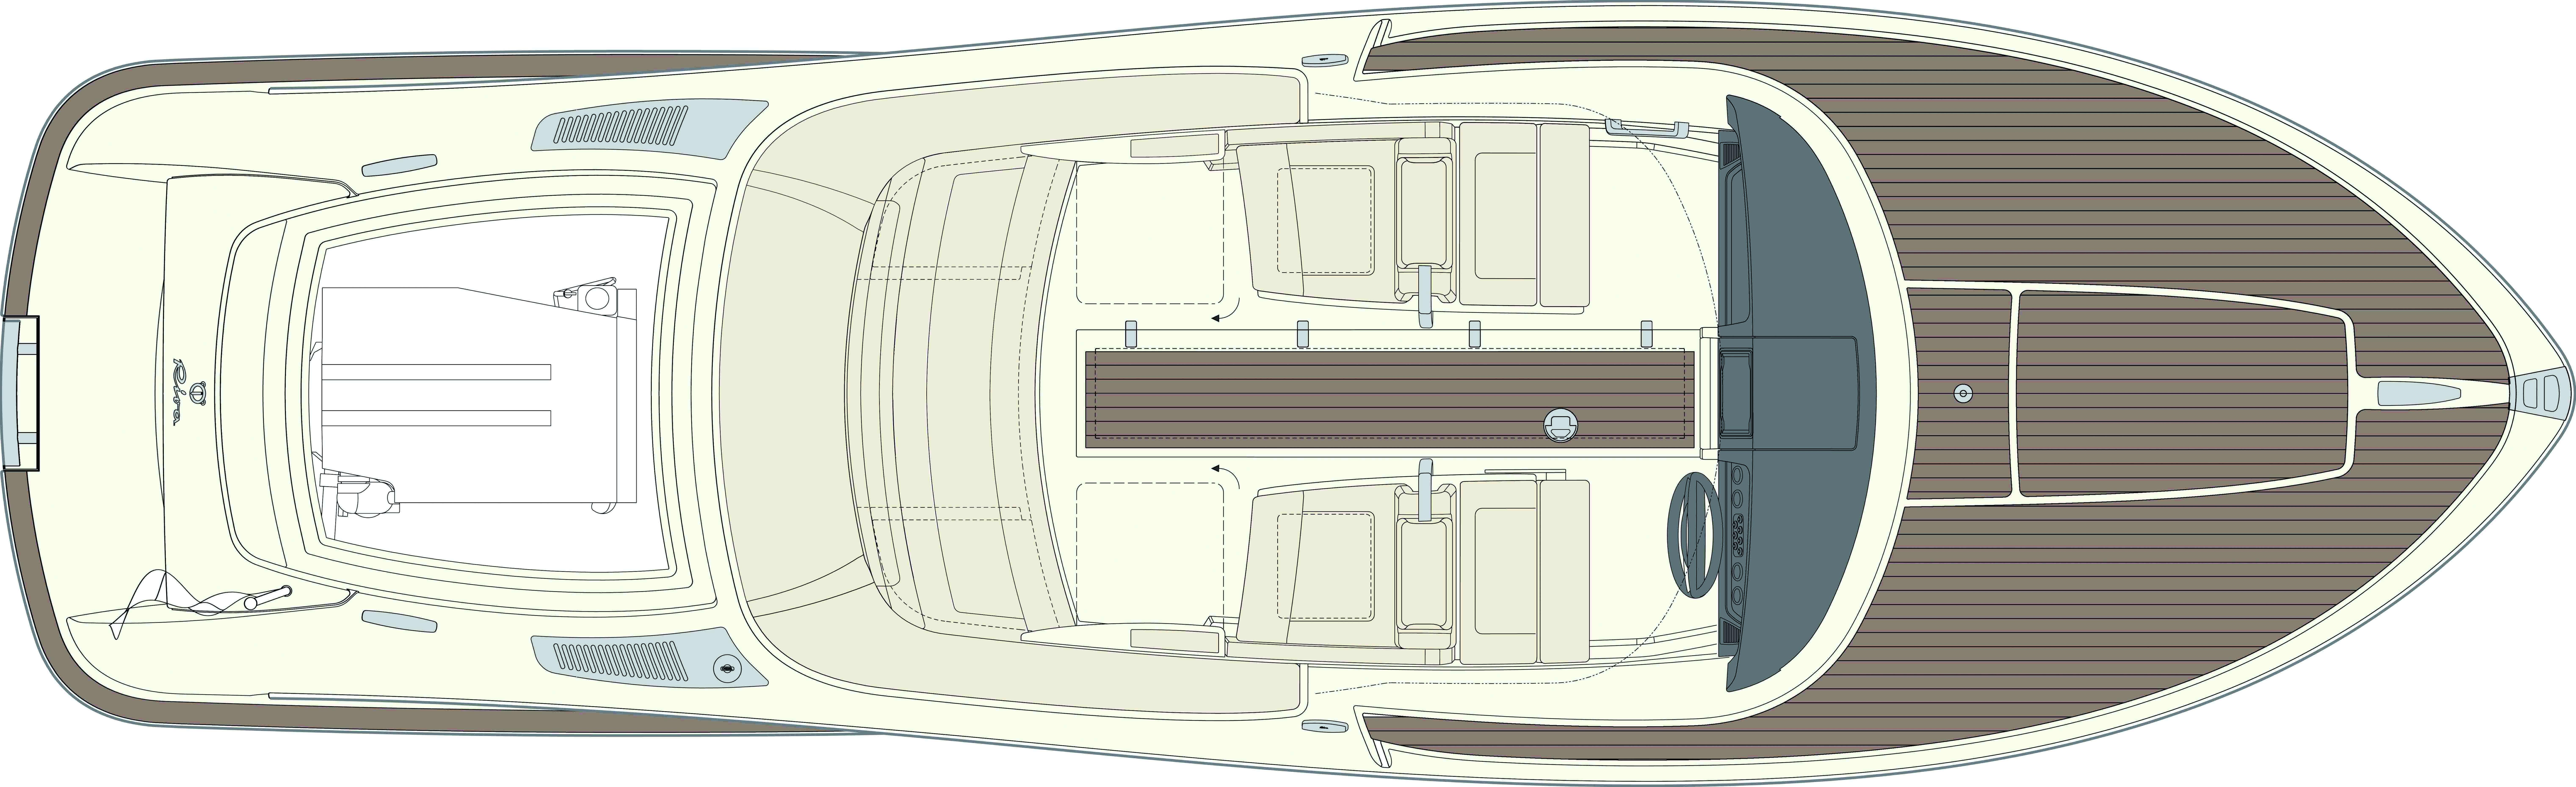 Manufacturer Provided Image: Riva Iseo Layout Plan